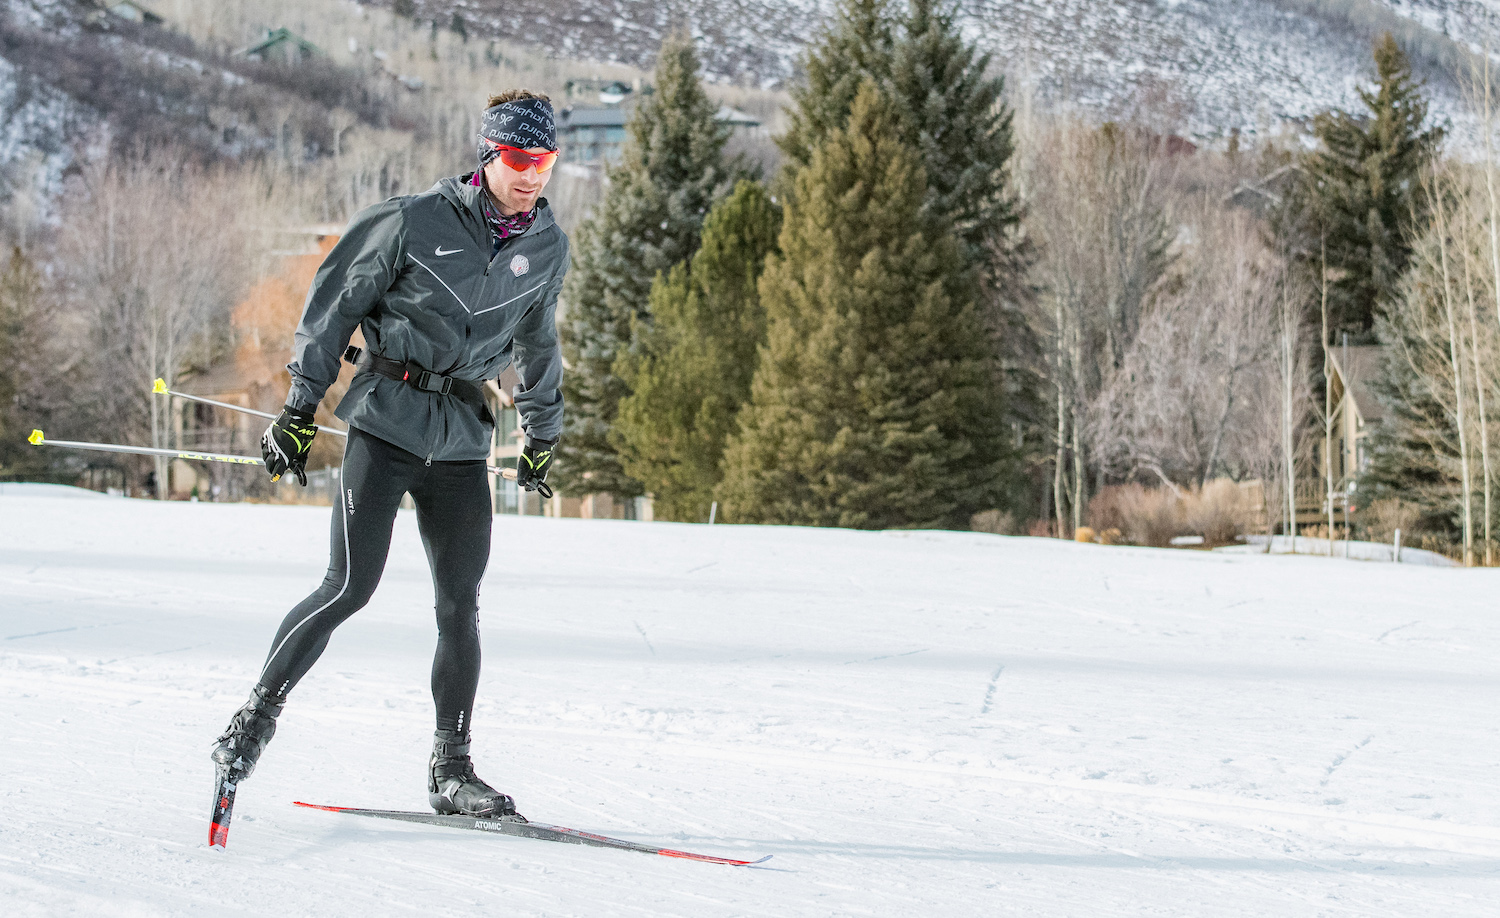 The Nordic Journey: Catching Up With Bryan Fletcher of USA Nordic